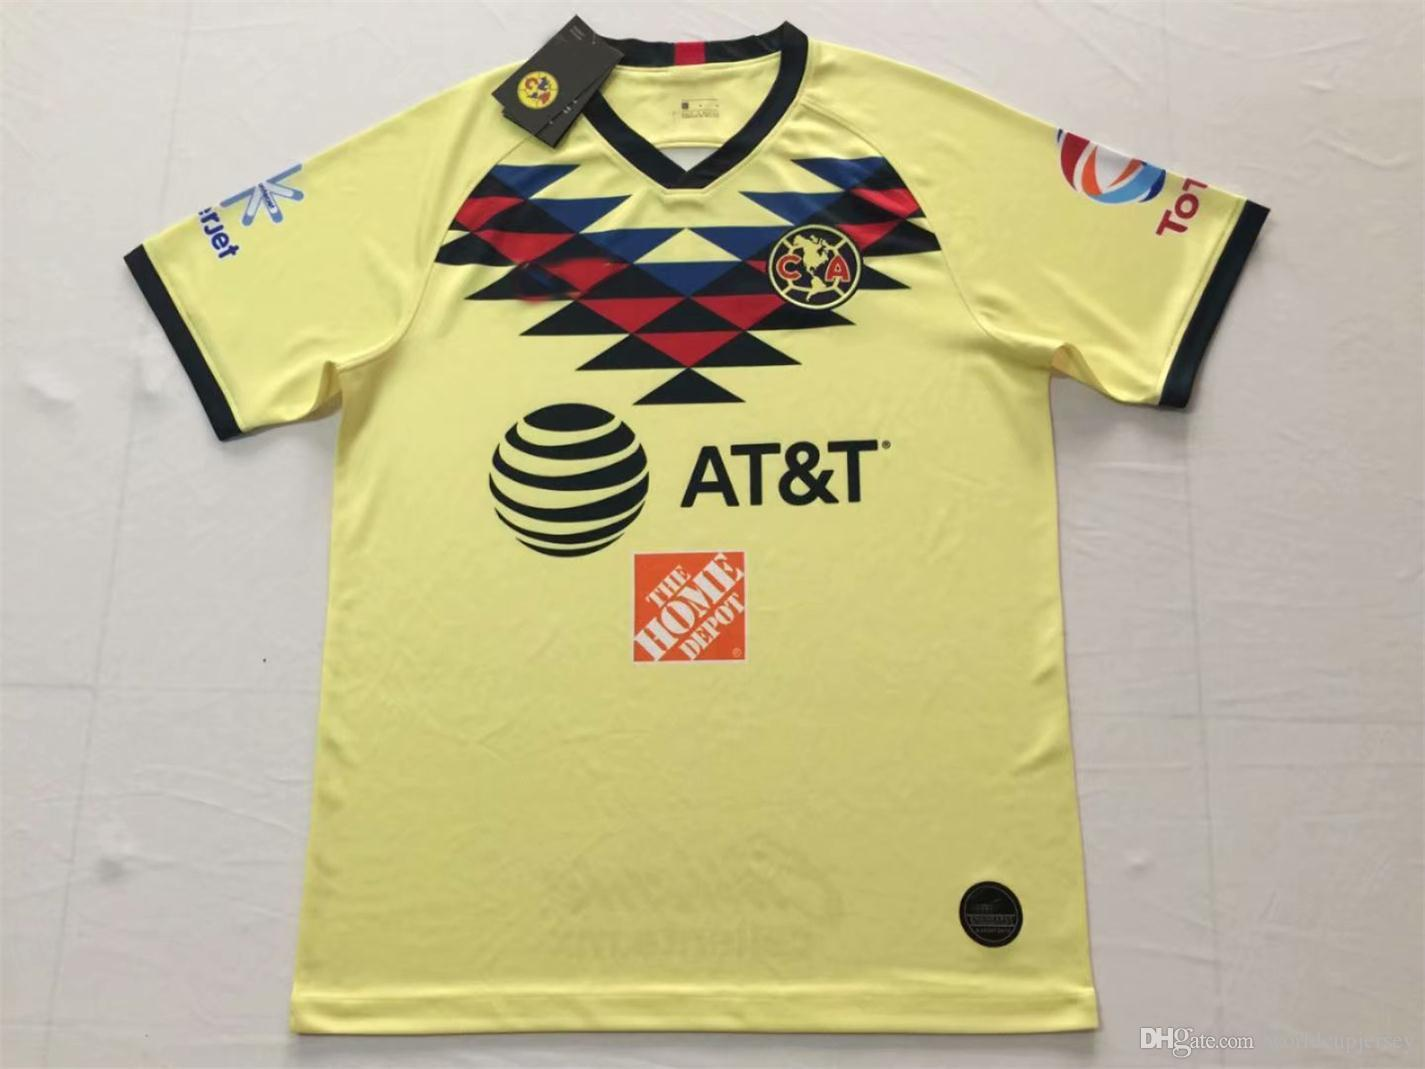 brand new 29f06 2ad74 2019 2020 club america jersey Home away 18 19 20 CLUB america soccer  jerseys DOMINGUEZ Matheus Uribe LAINEZ PERALTA MEXICO football shirt